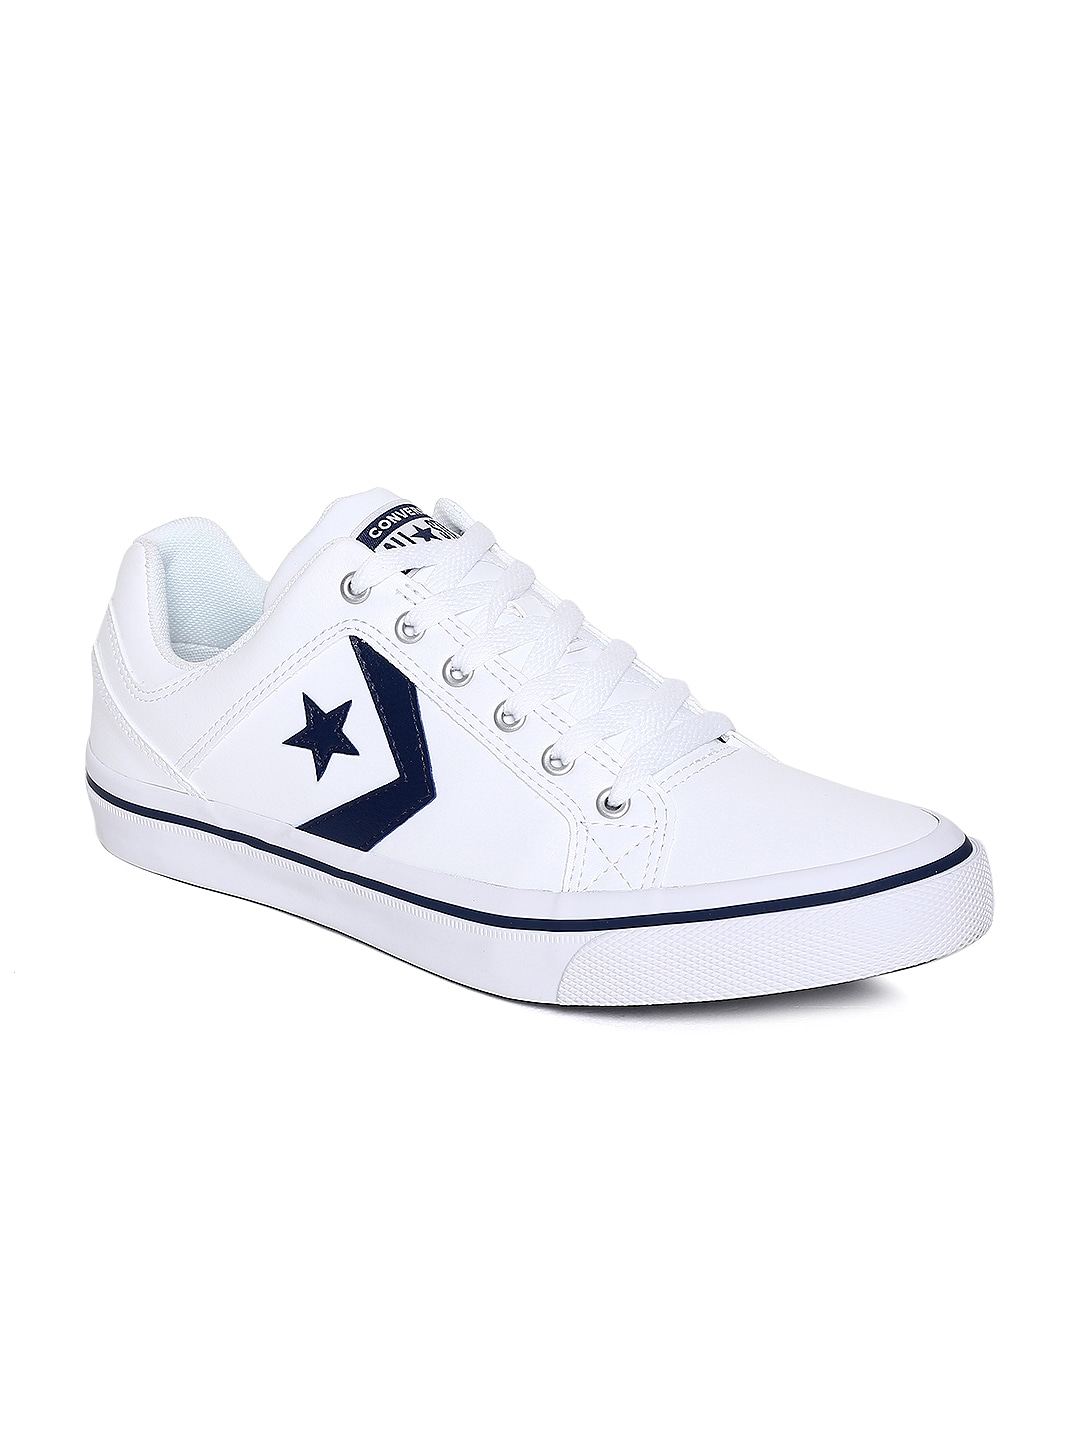 Synthetic Shoes Converse Synthetic online in Shoes Converse Buy India QsCtrdxh